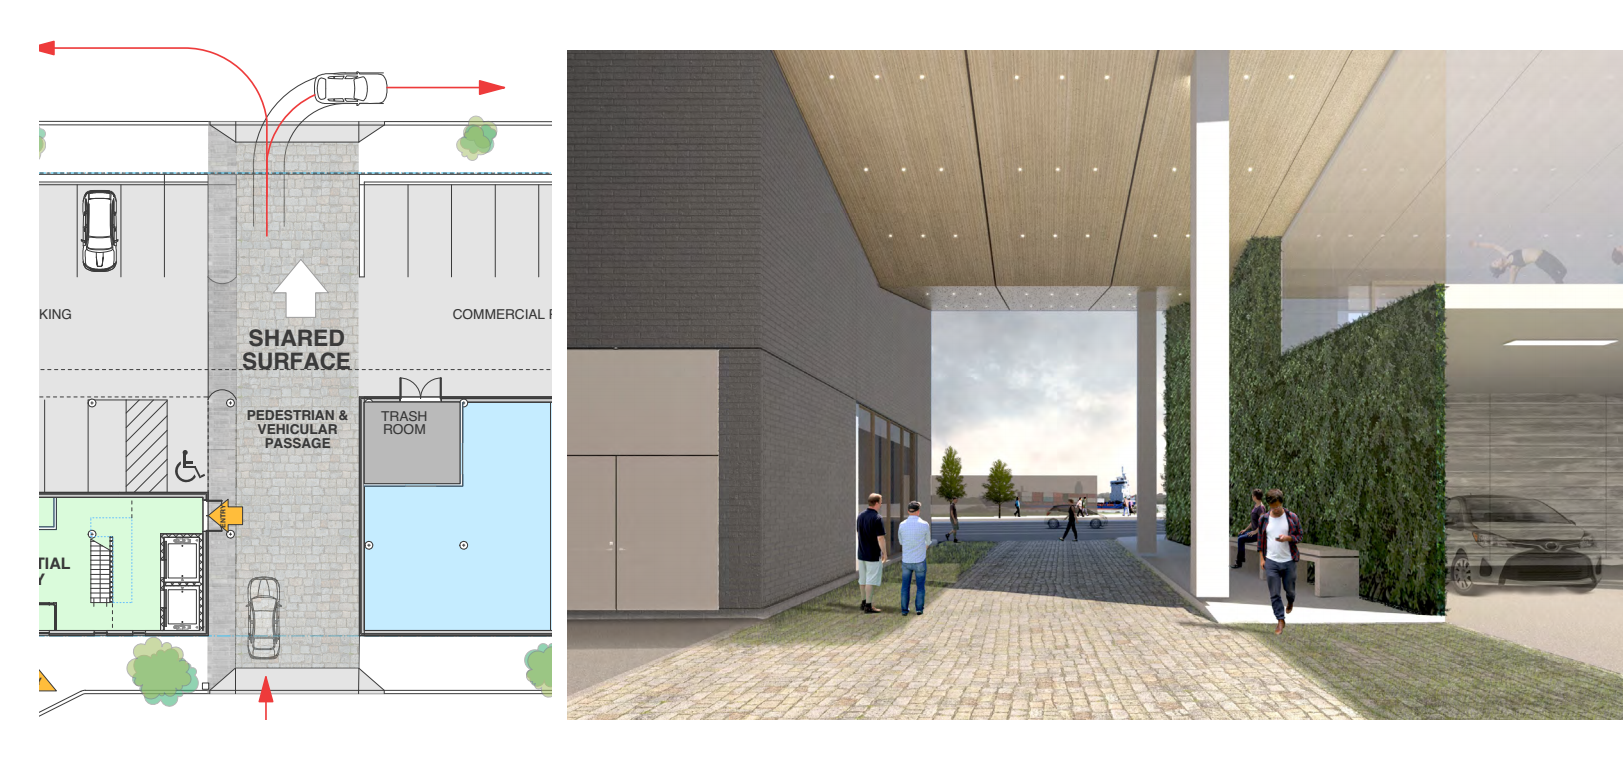 1100 N. Delaware Ave: shared surface passageway | Stanev Potts Architects, Nov. 2016 CDR presentation